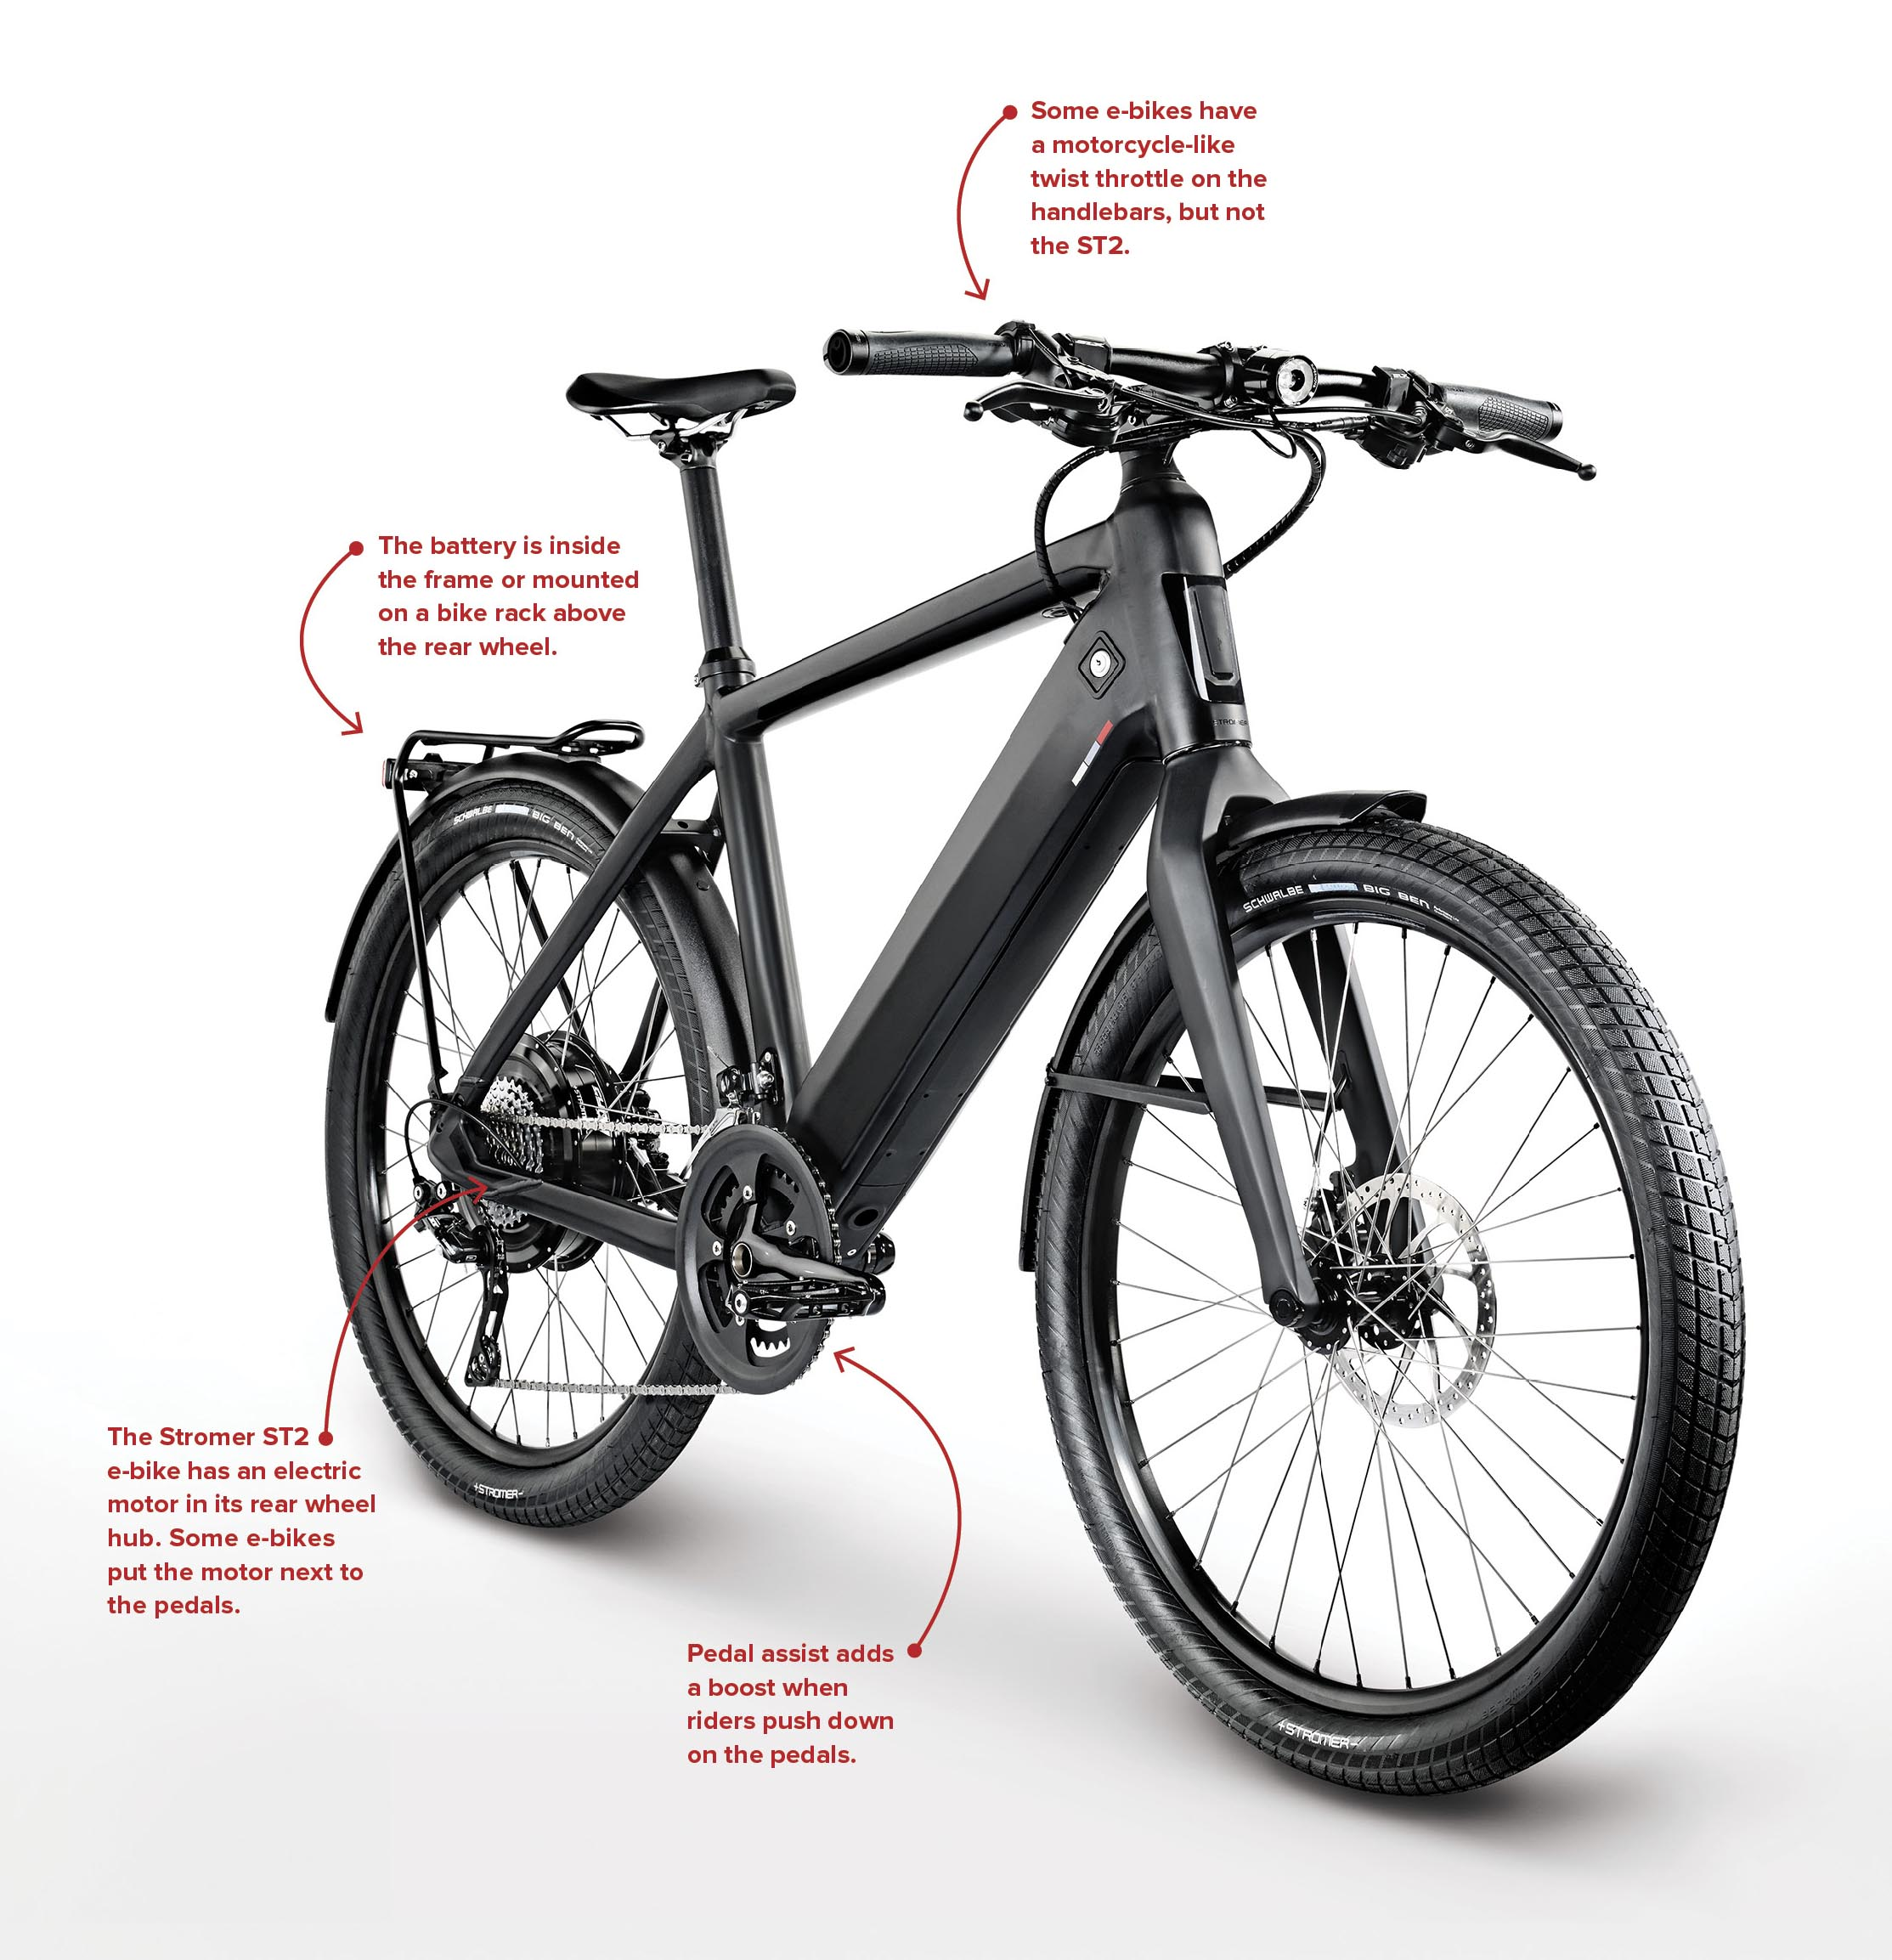 E-bikes add a battery and motor to traditional designs.